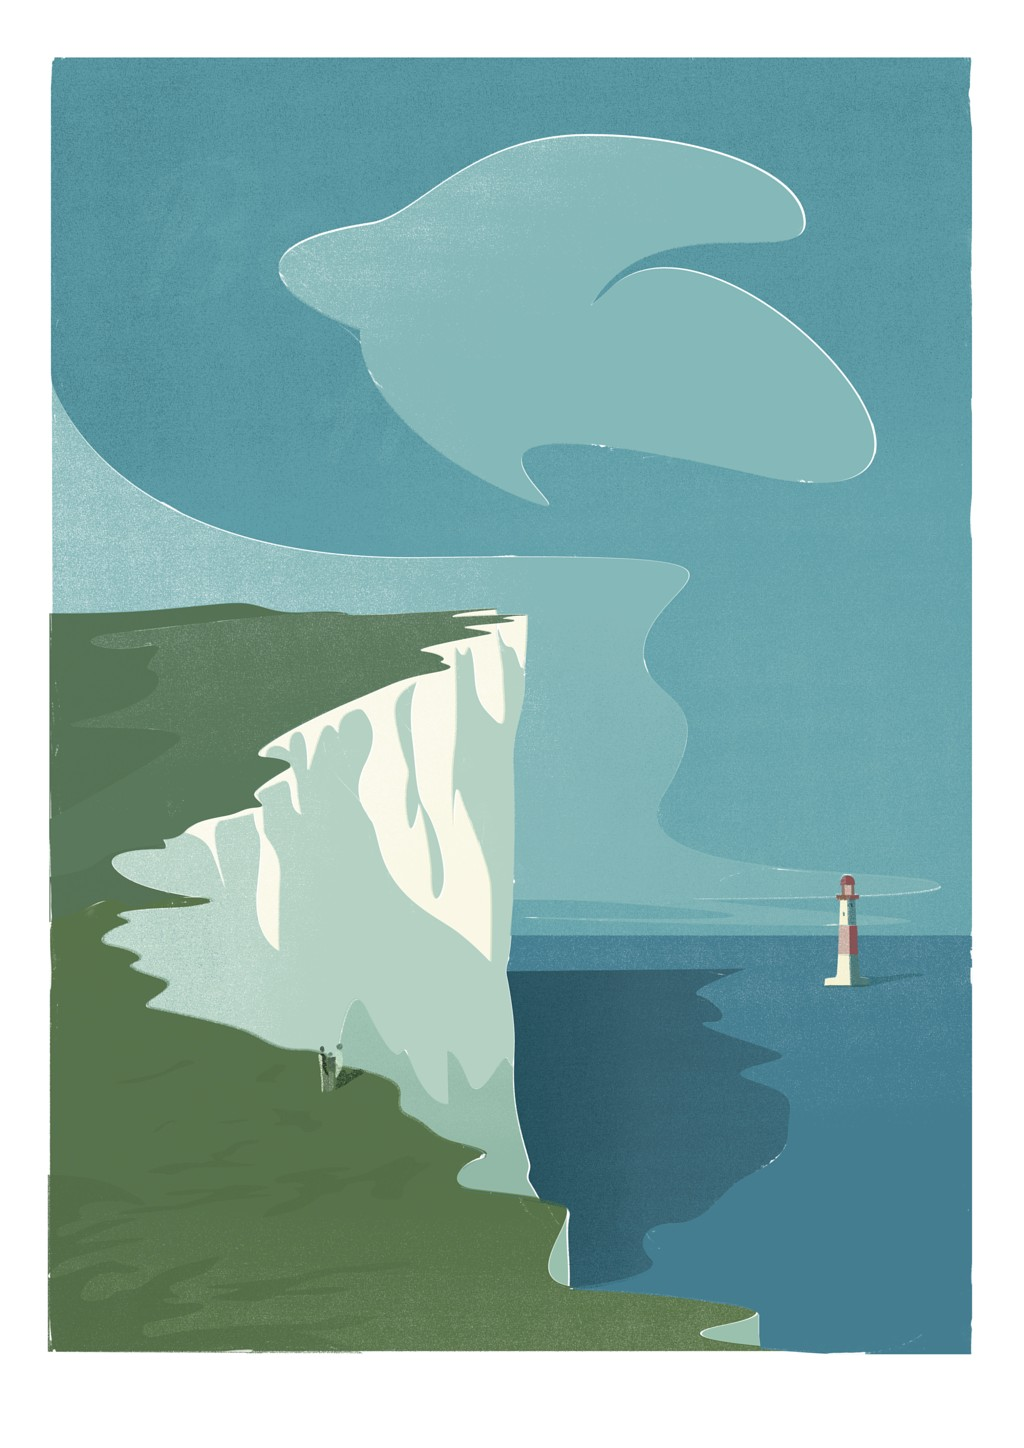 Beachy Head Illustration